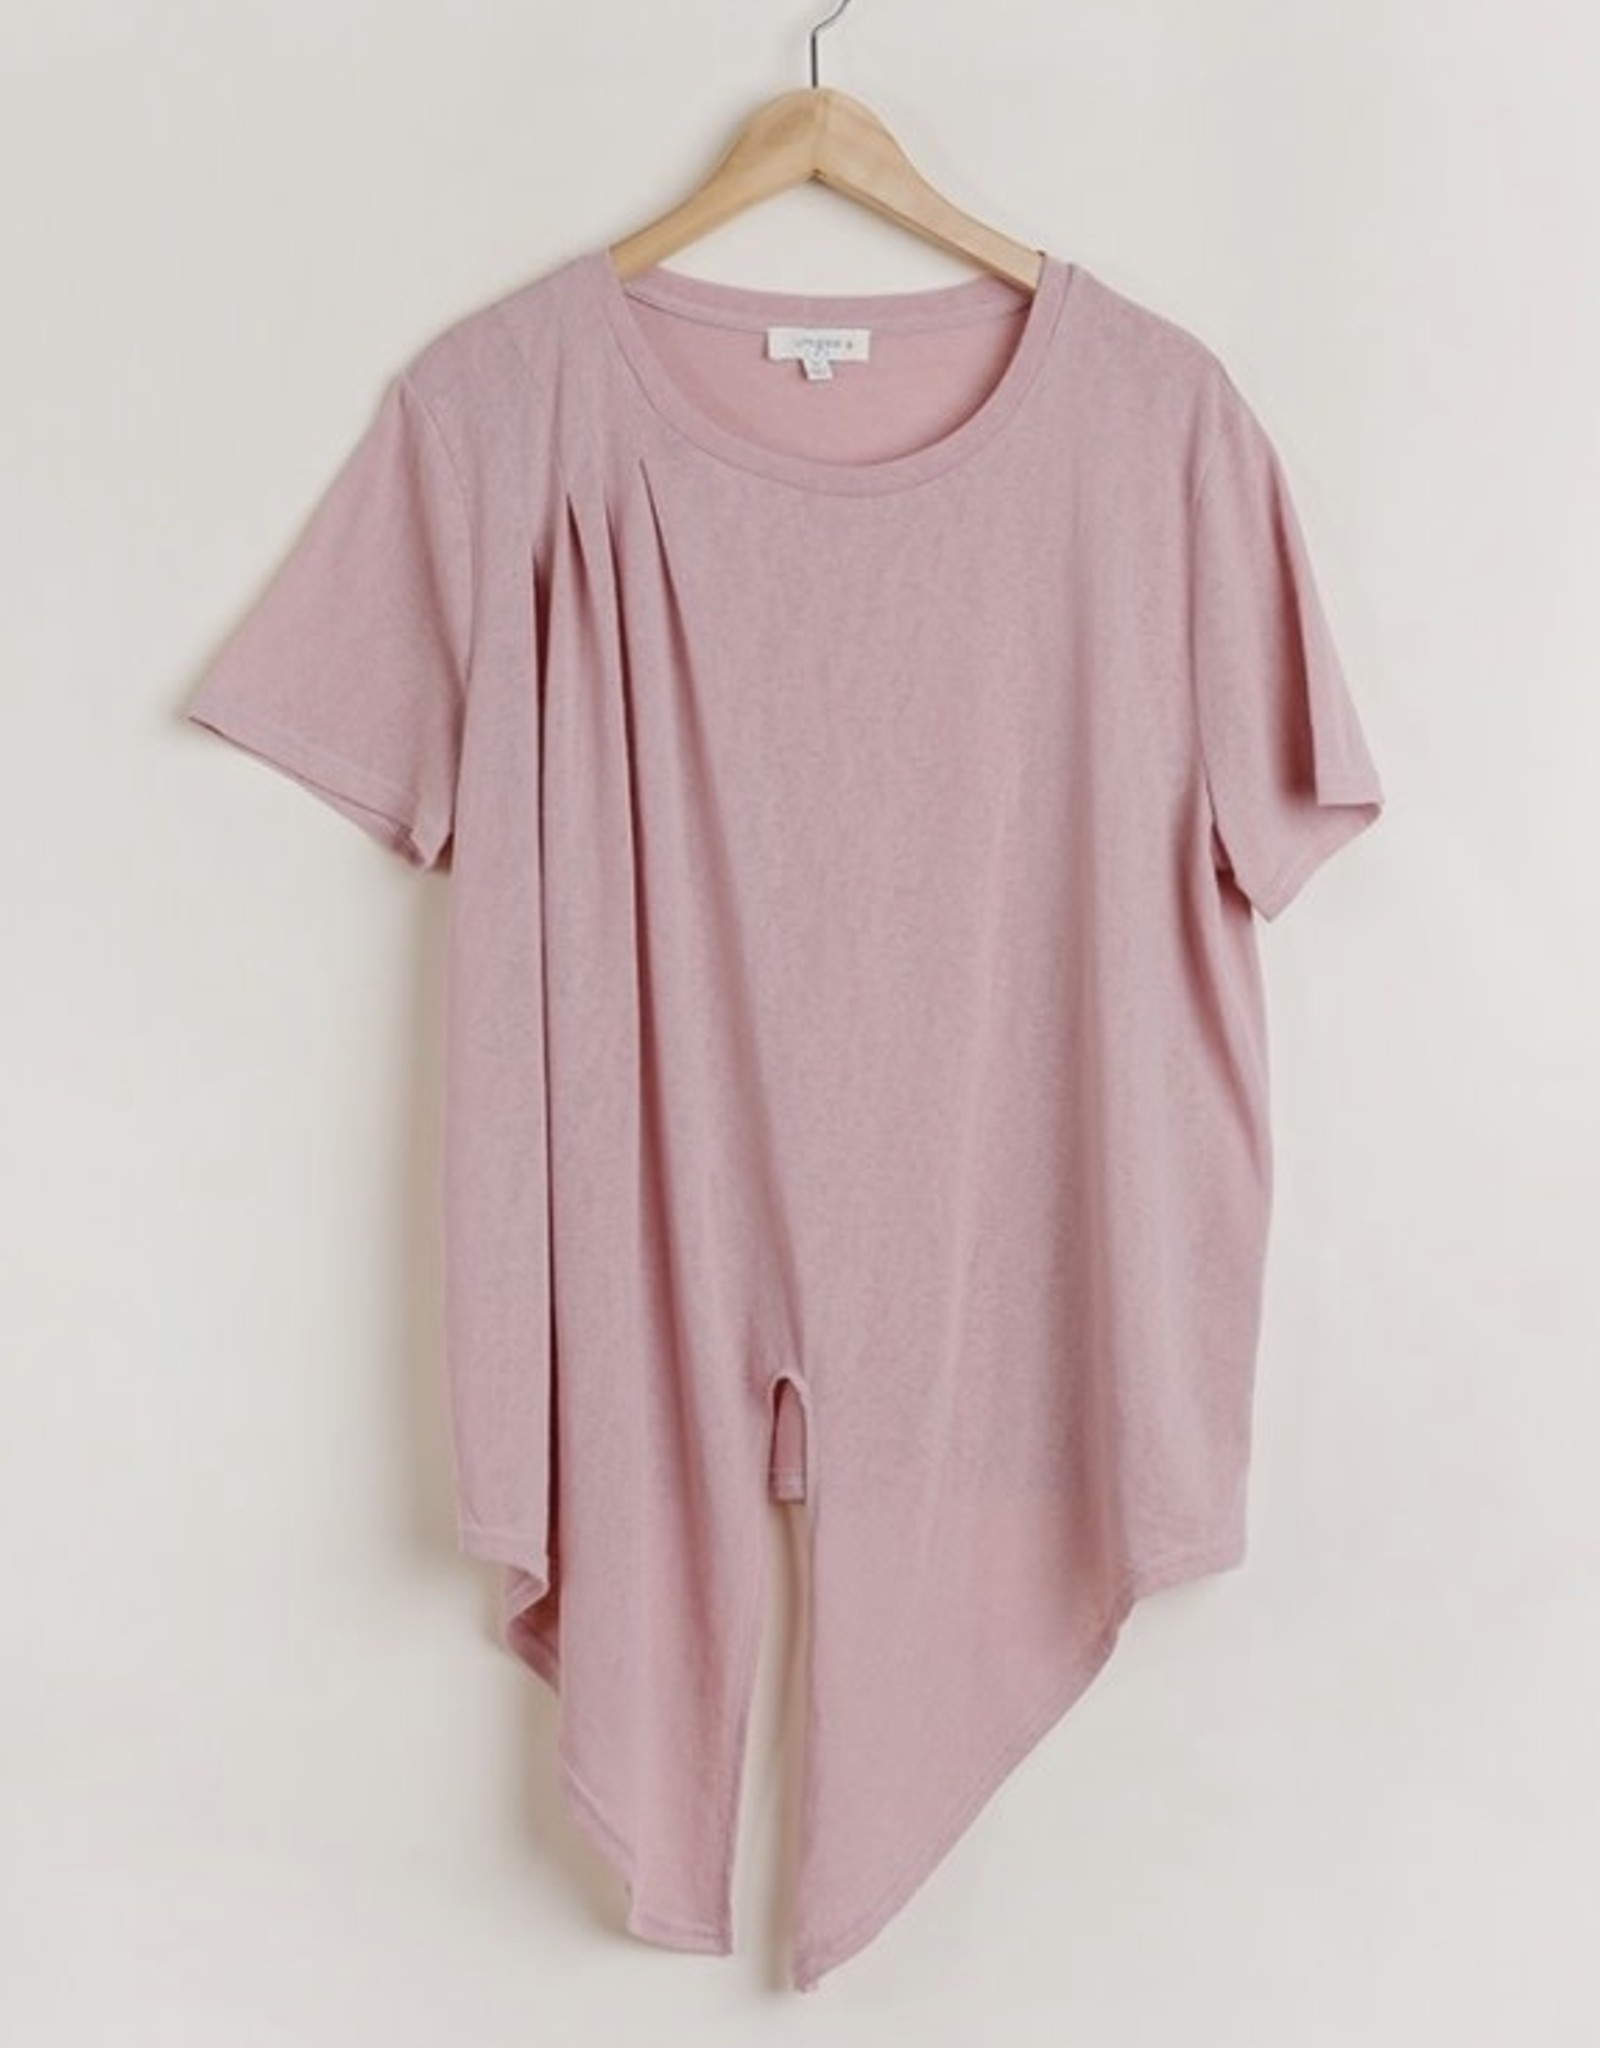 Pink knotted tee